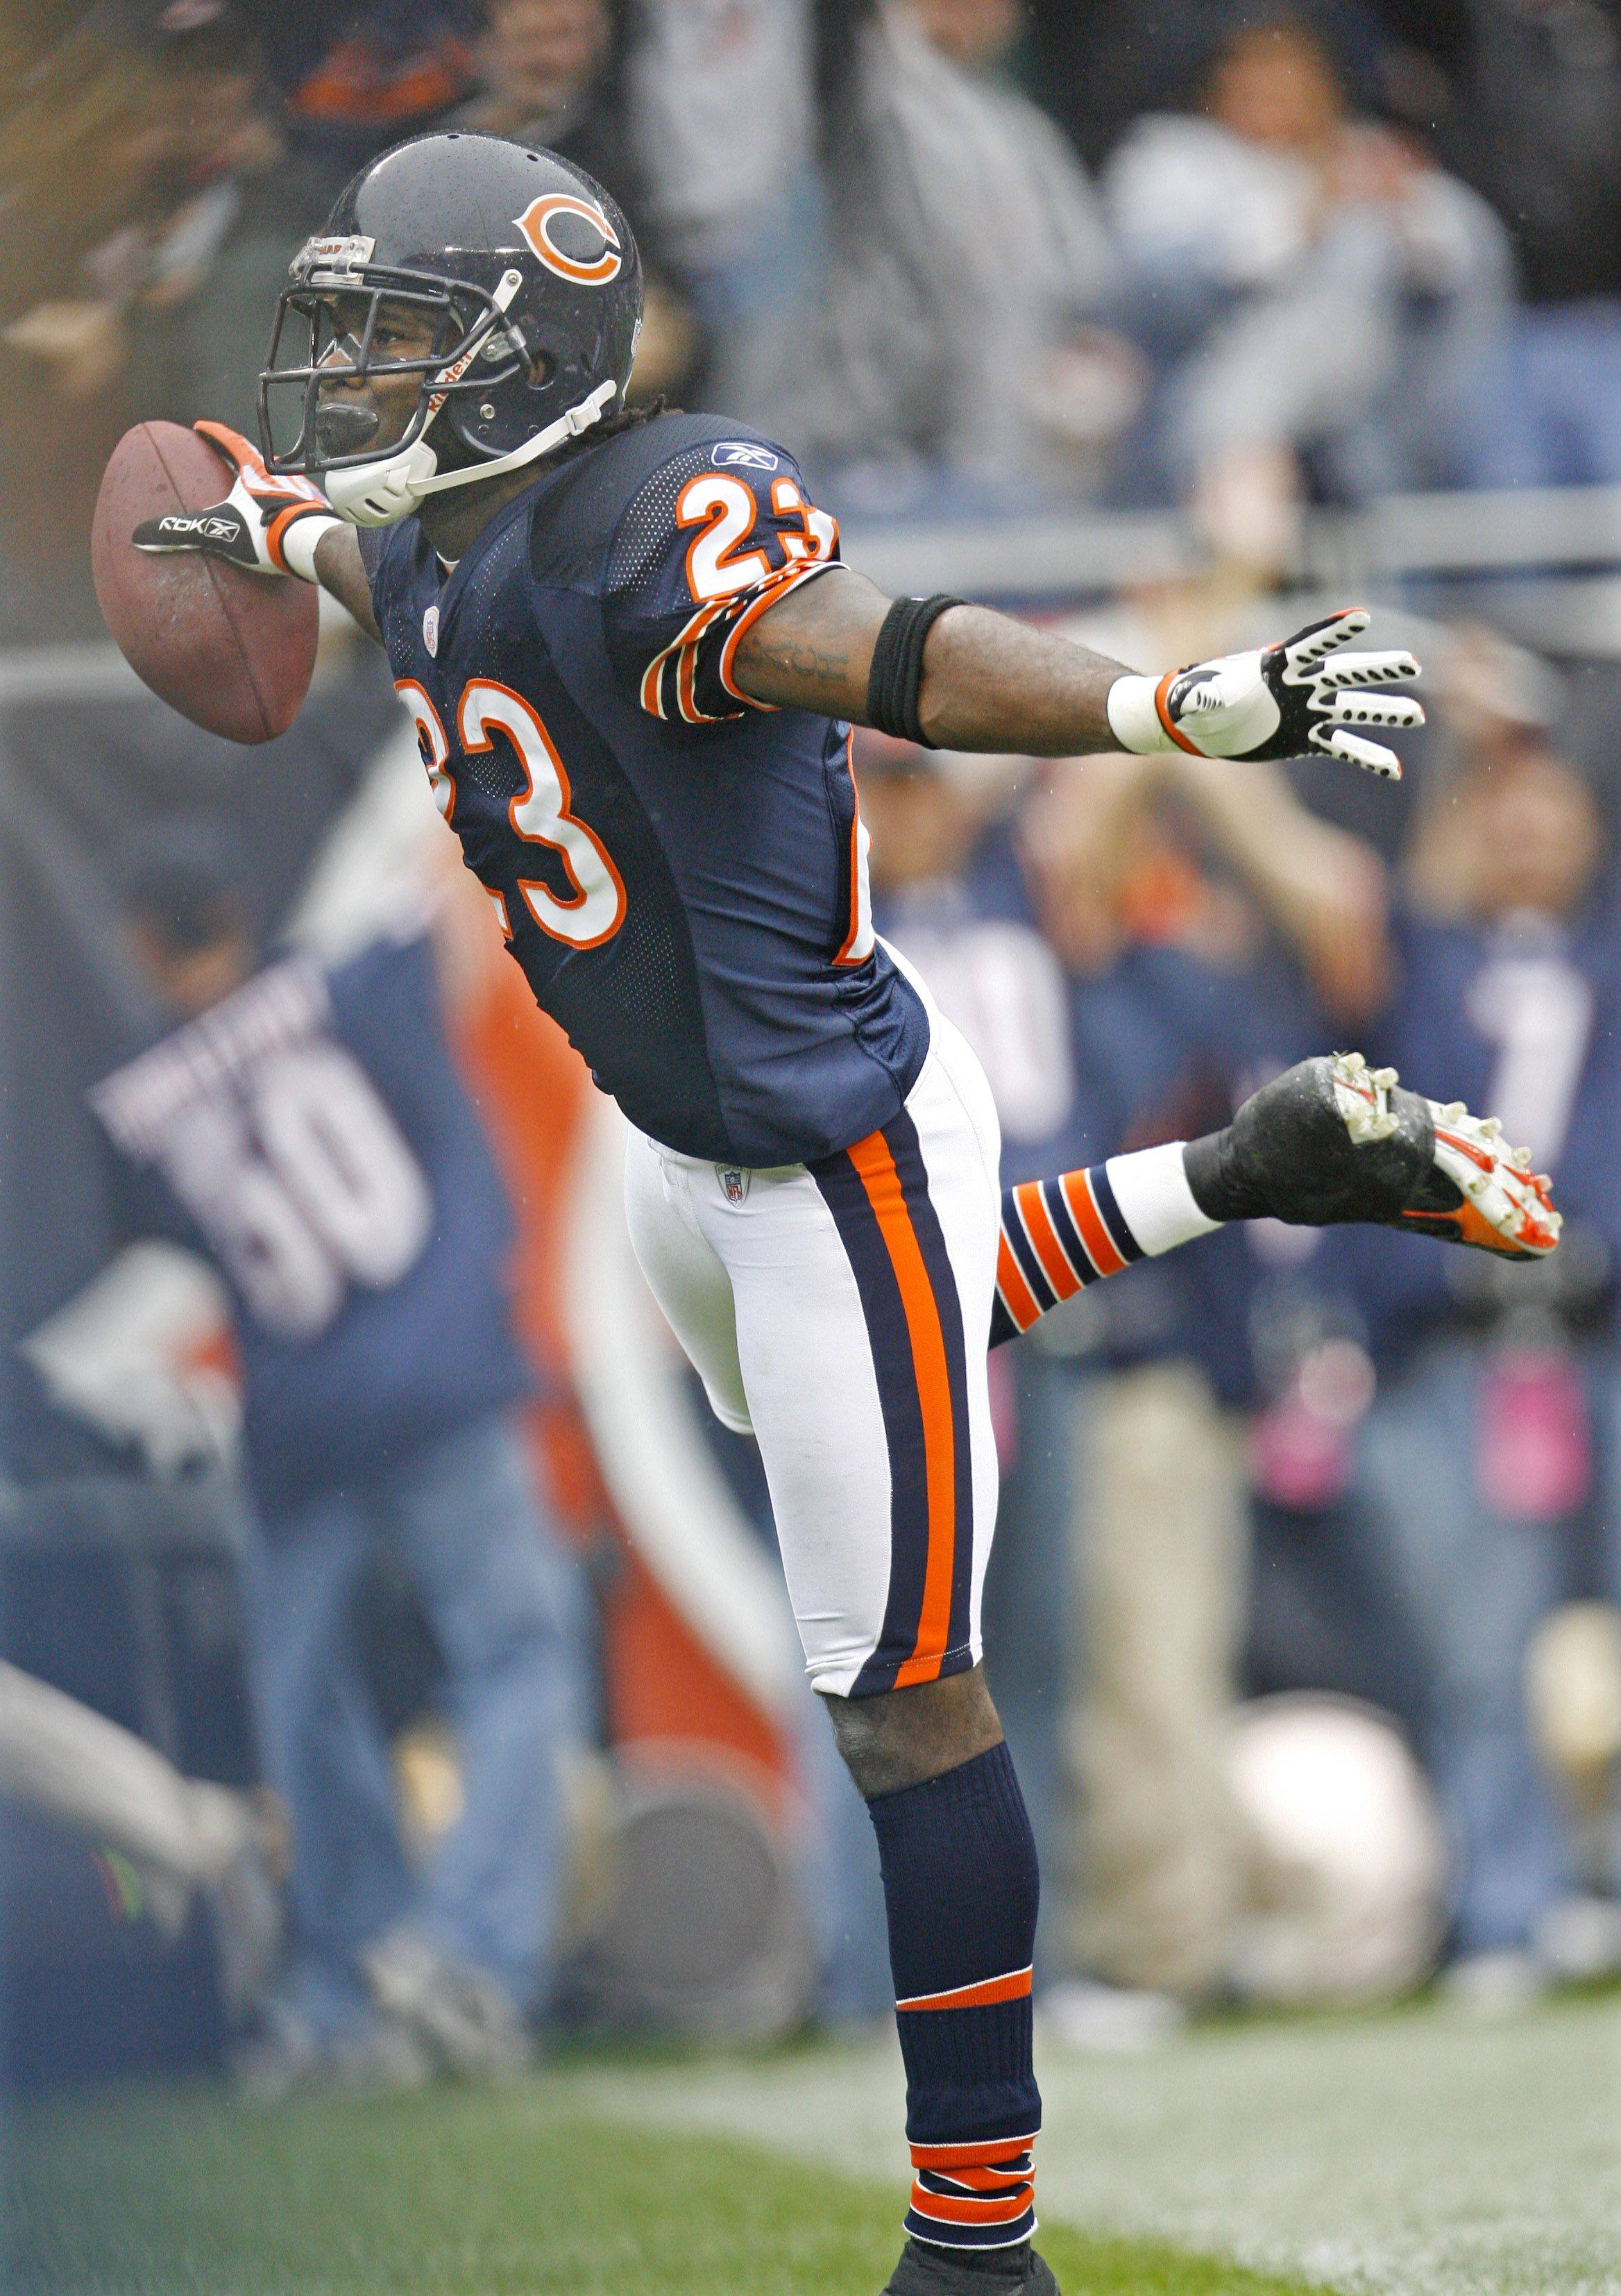 No. 9: Devin Hester returns a punt 89 yards for a touchdown against the Minnesota Vikings on Oct. 14, 2007, at Soldier Field in Chicago.